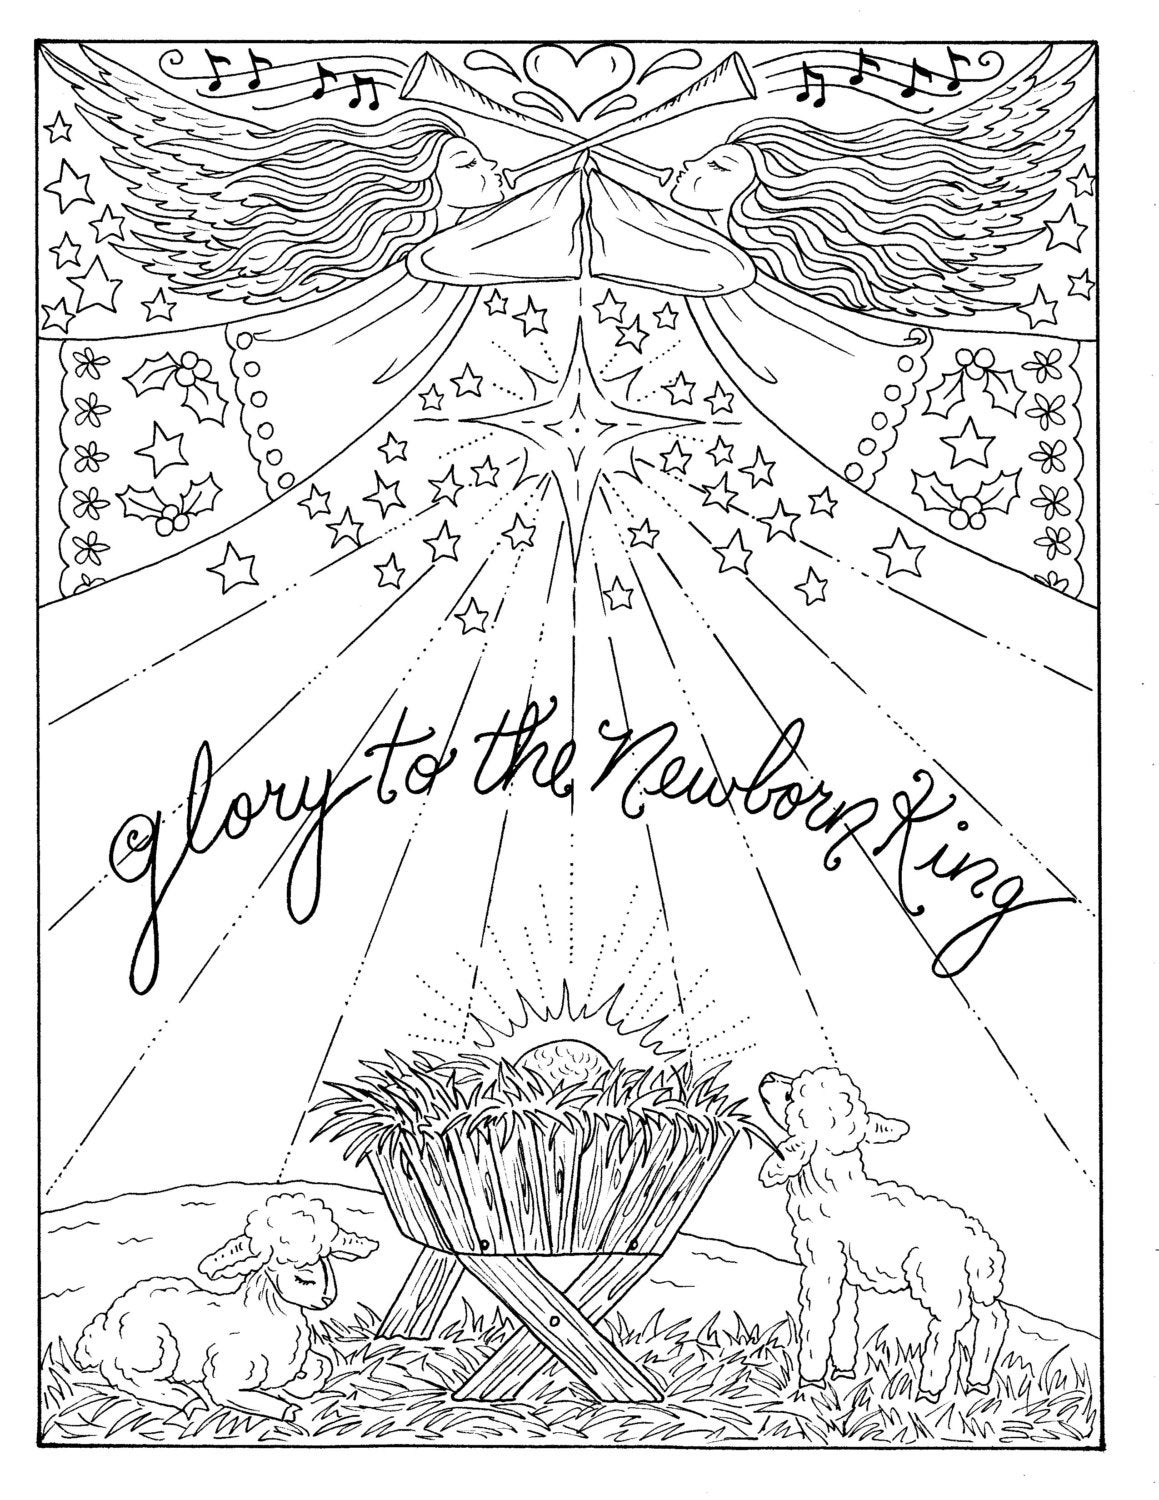 5 Pages of Christmas Coloring Christian Scriptures Bible Adult color  book/digital/digi stamp/church/bible